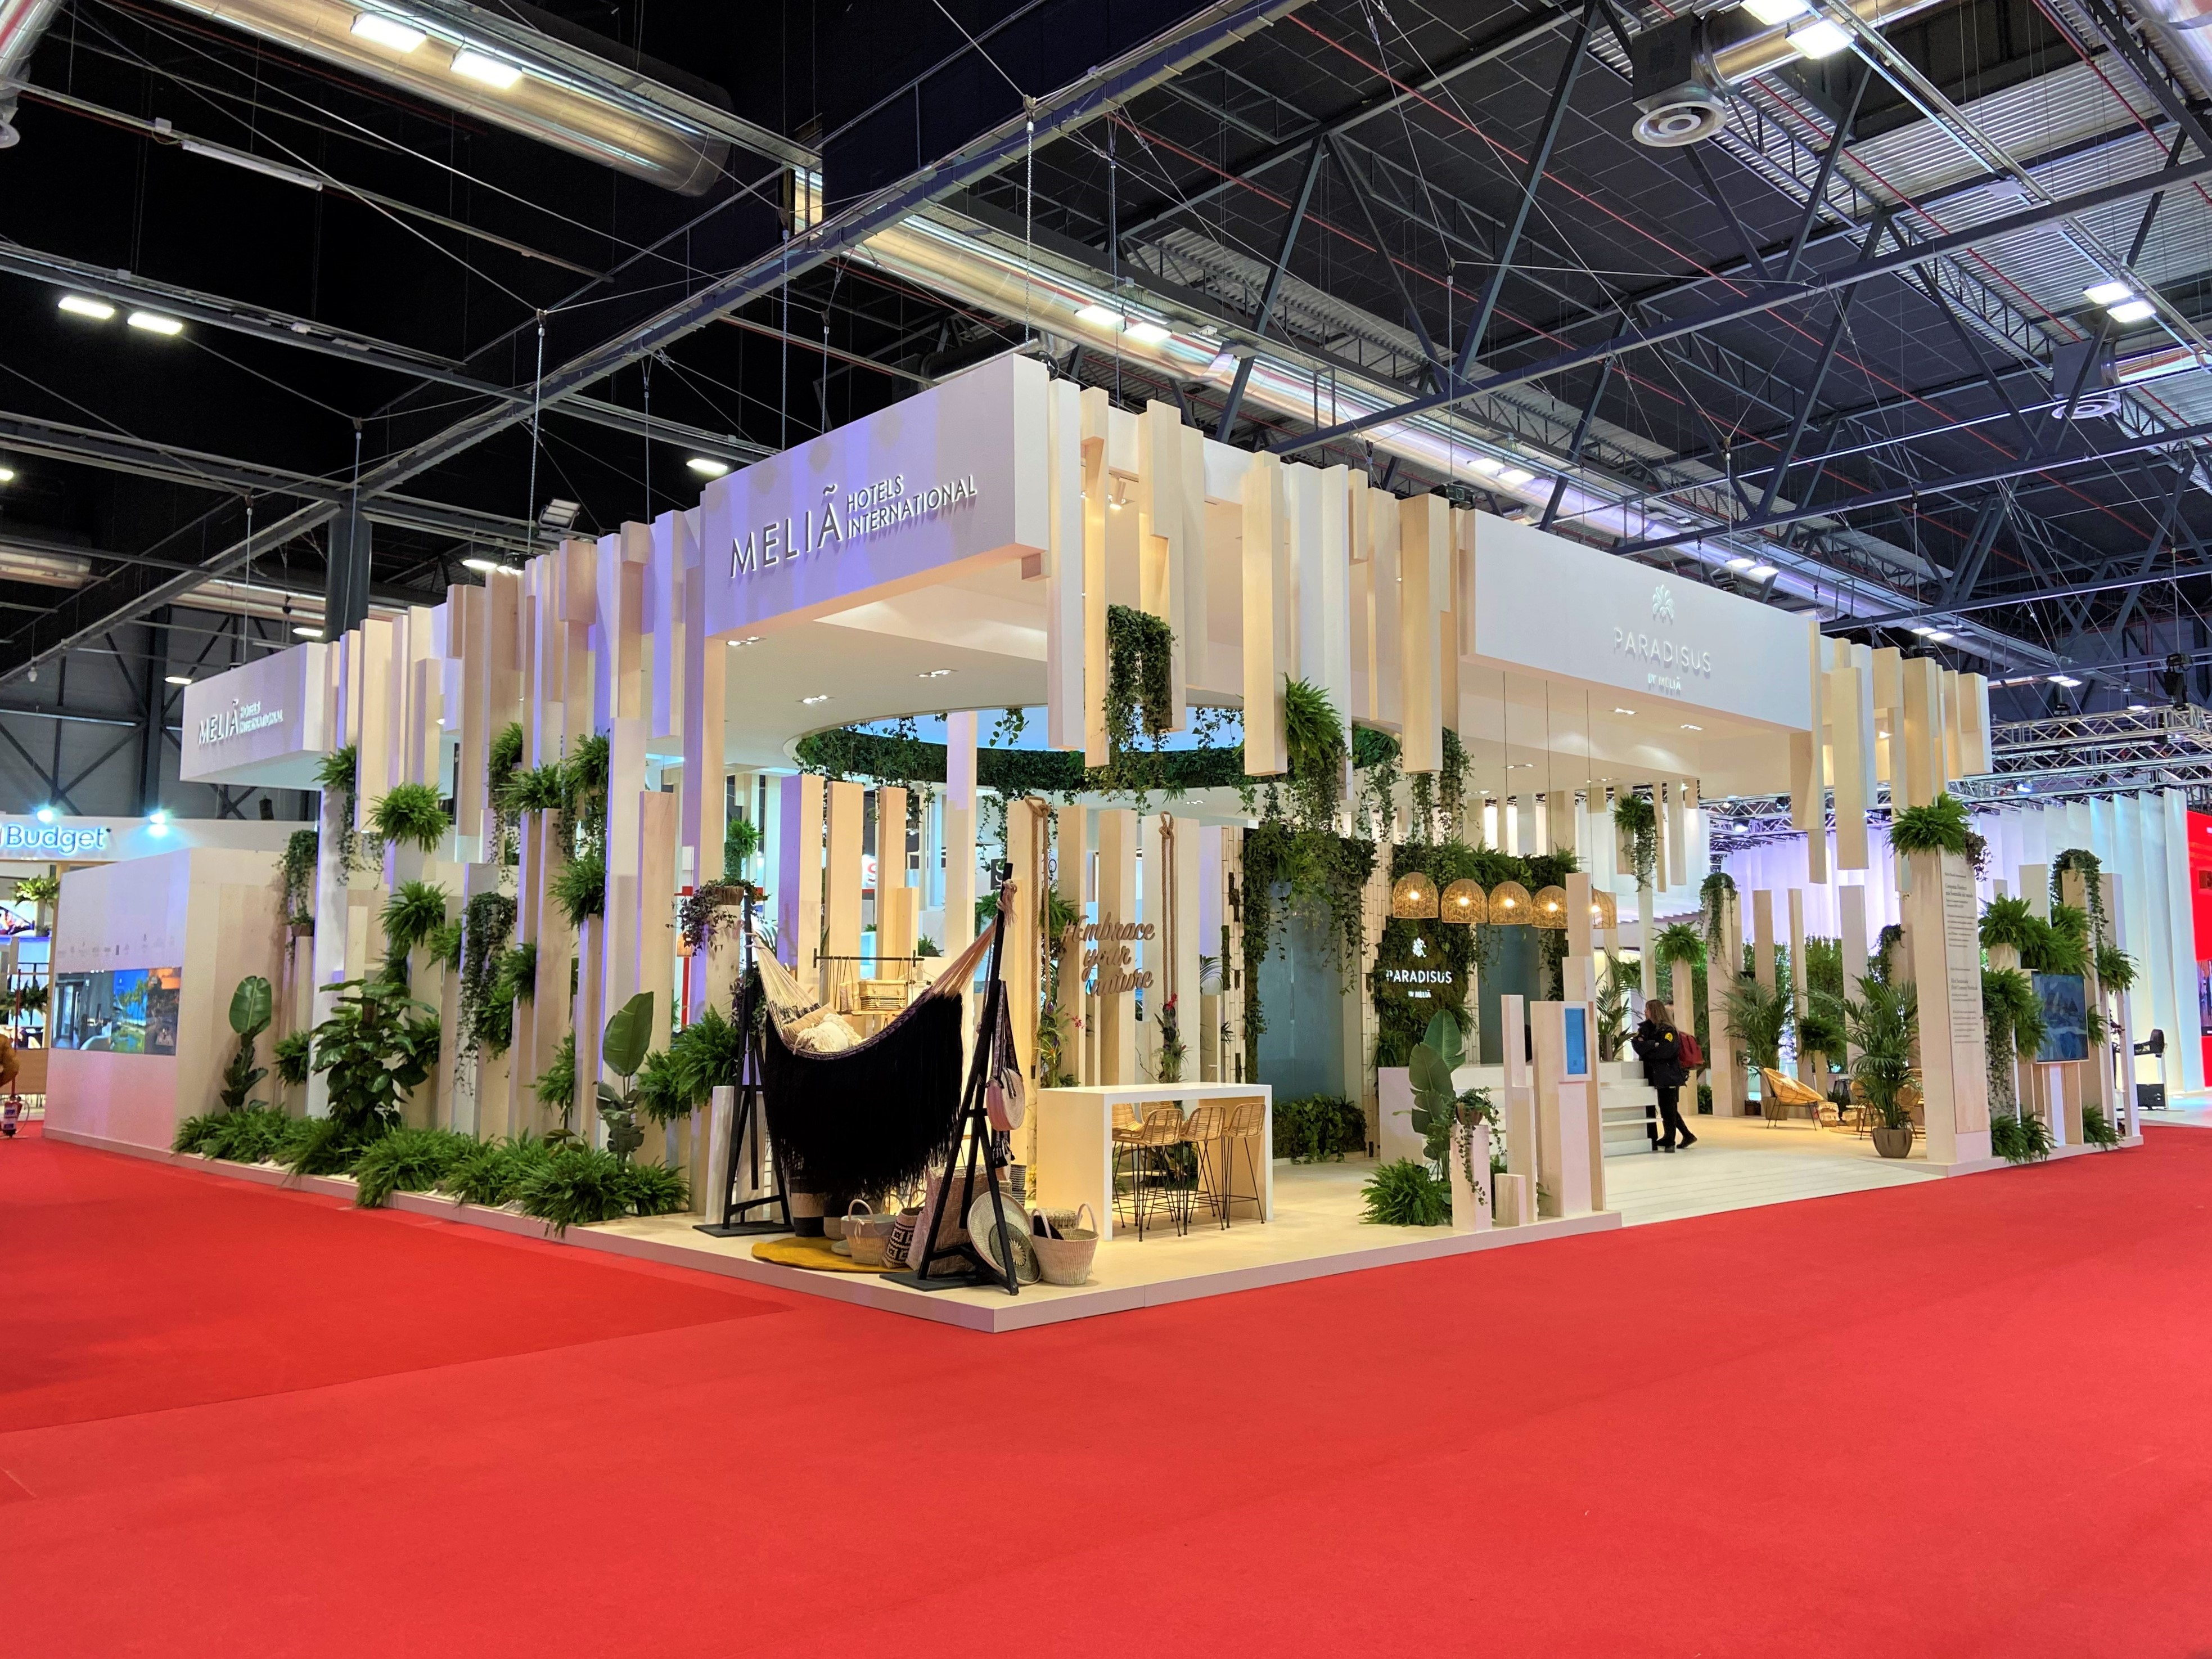 Design and construction of the PARADISUS by Meliá stand in Fitur 2020, awarded as the BEST stand in this event.